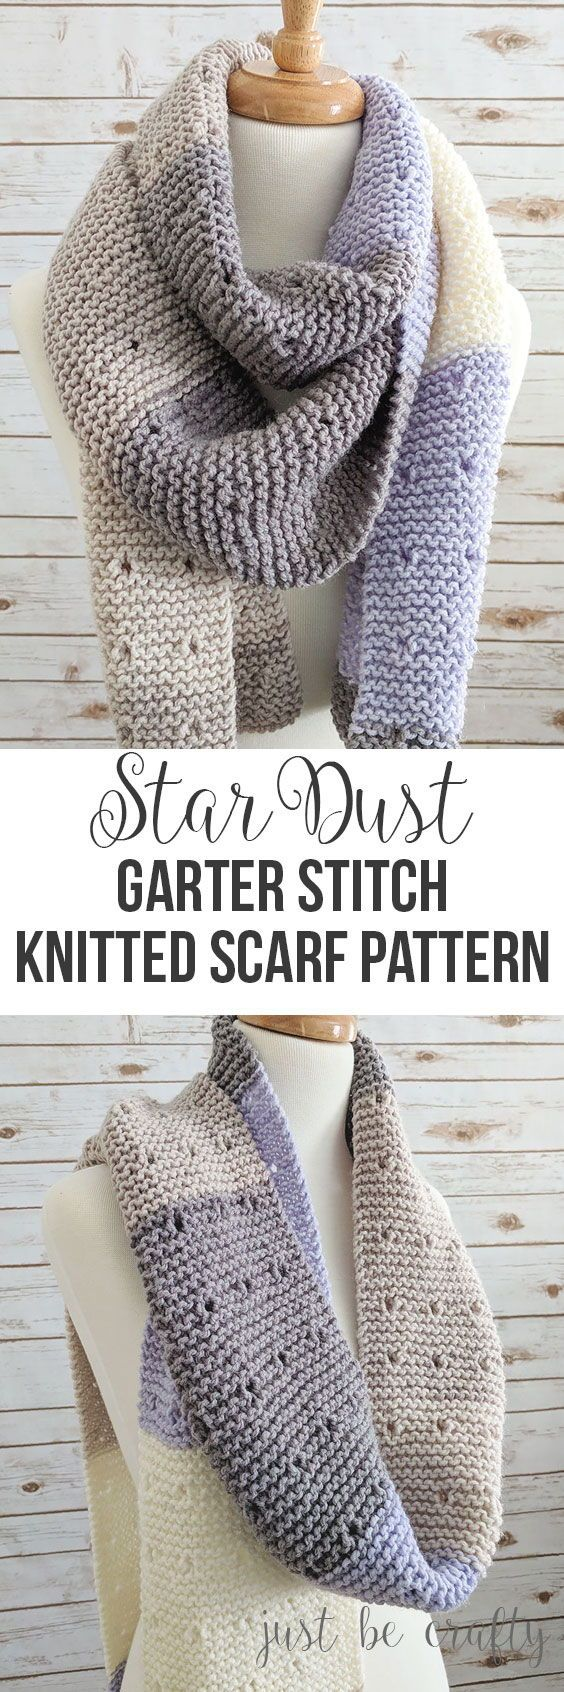 Star Dust Knitted Scarf Pattern |  Free Knitting Pattern - super easy knit pattern! | Just Be Crafty